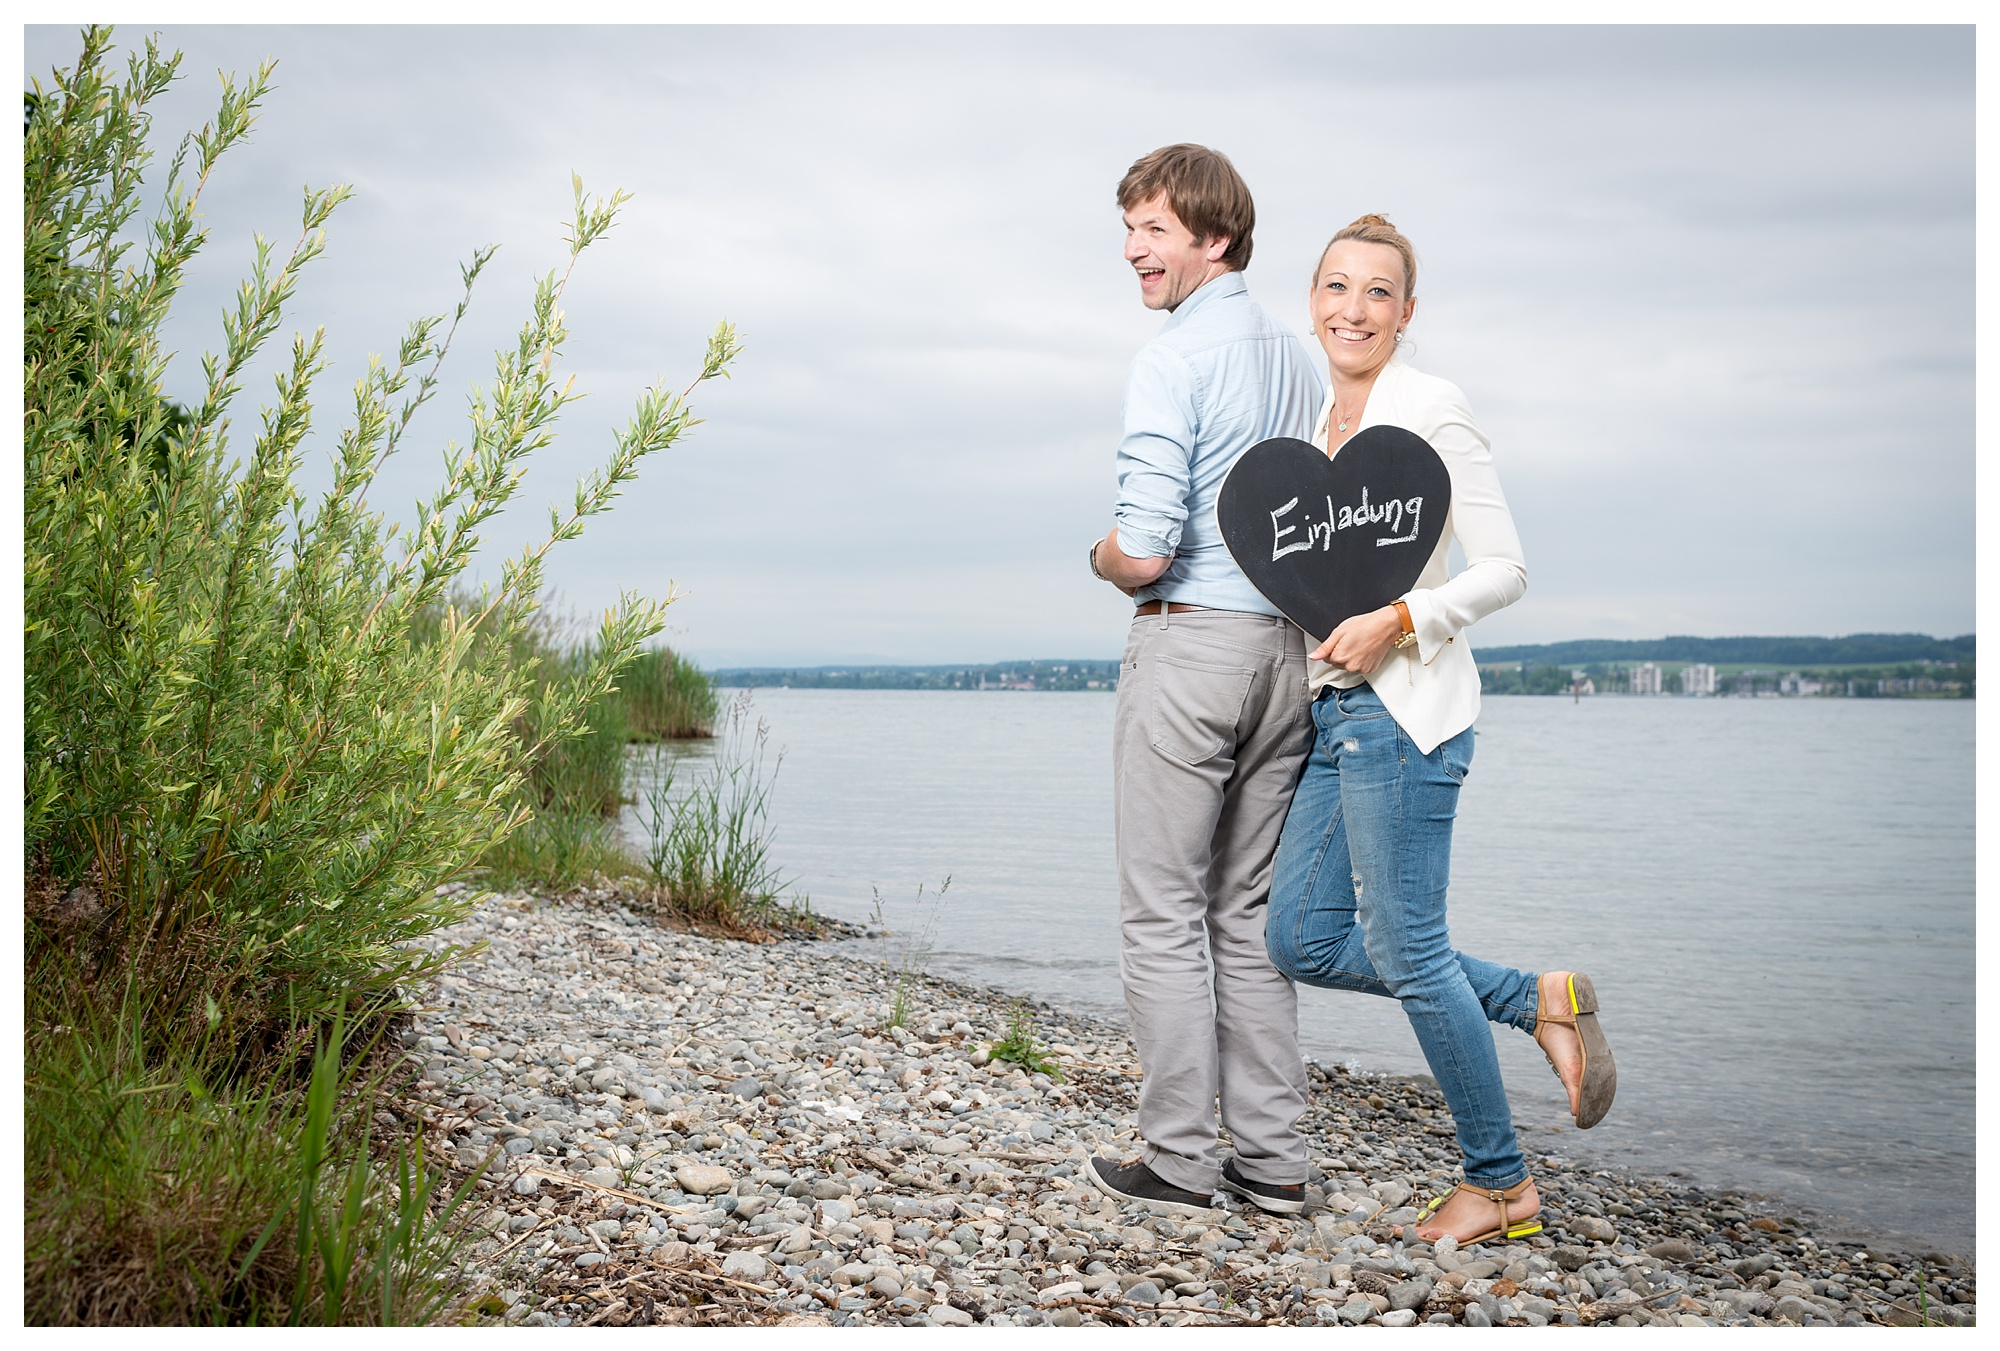 Fotograf Konstanz - Couple Shooting at Lake of Constance  - 11 -